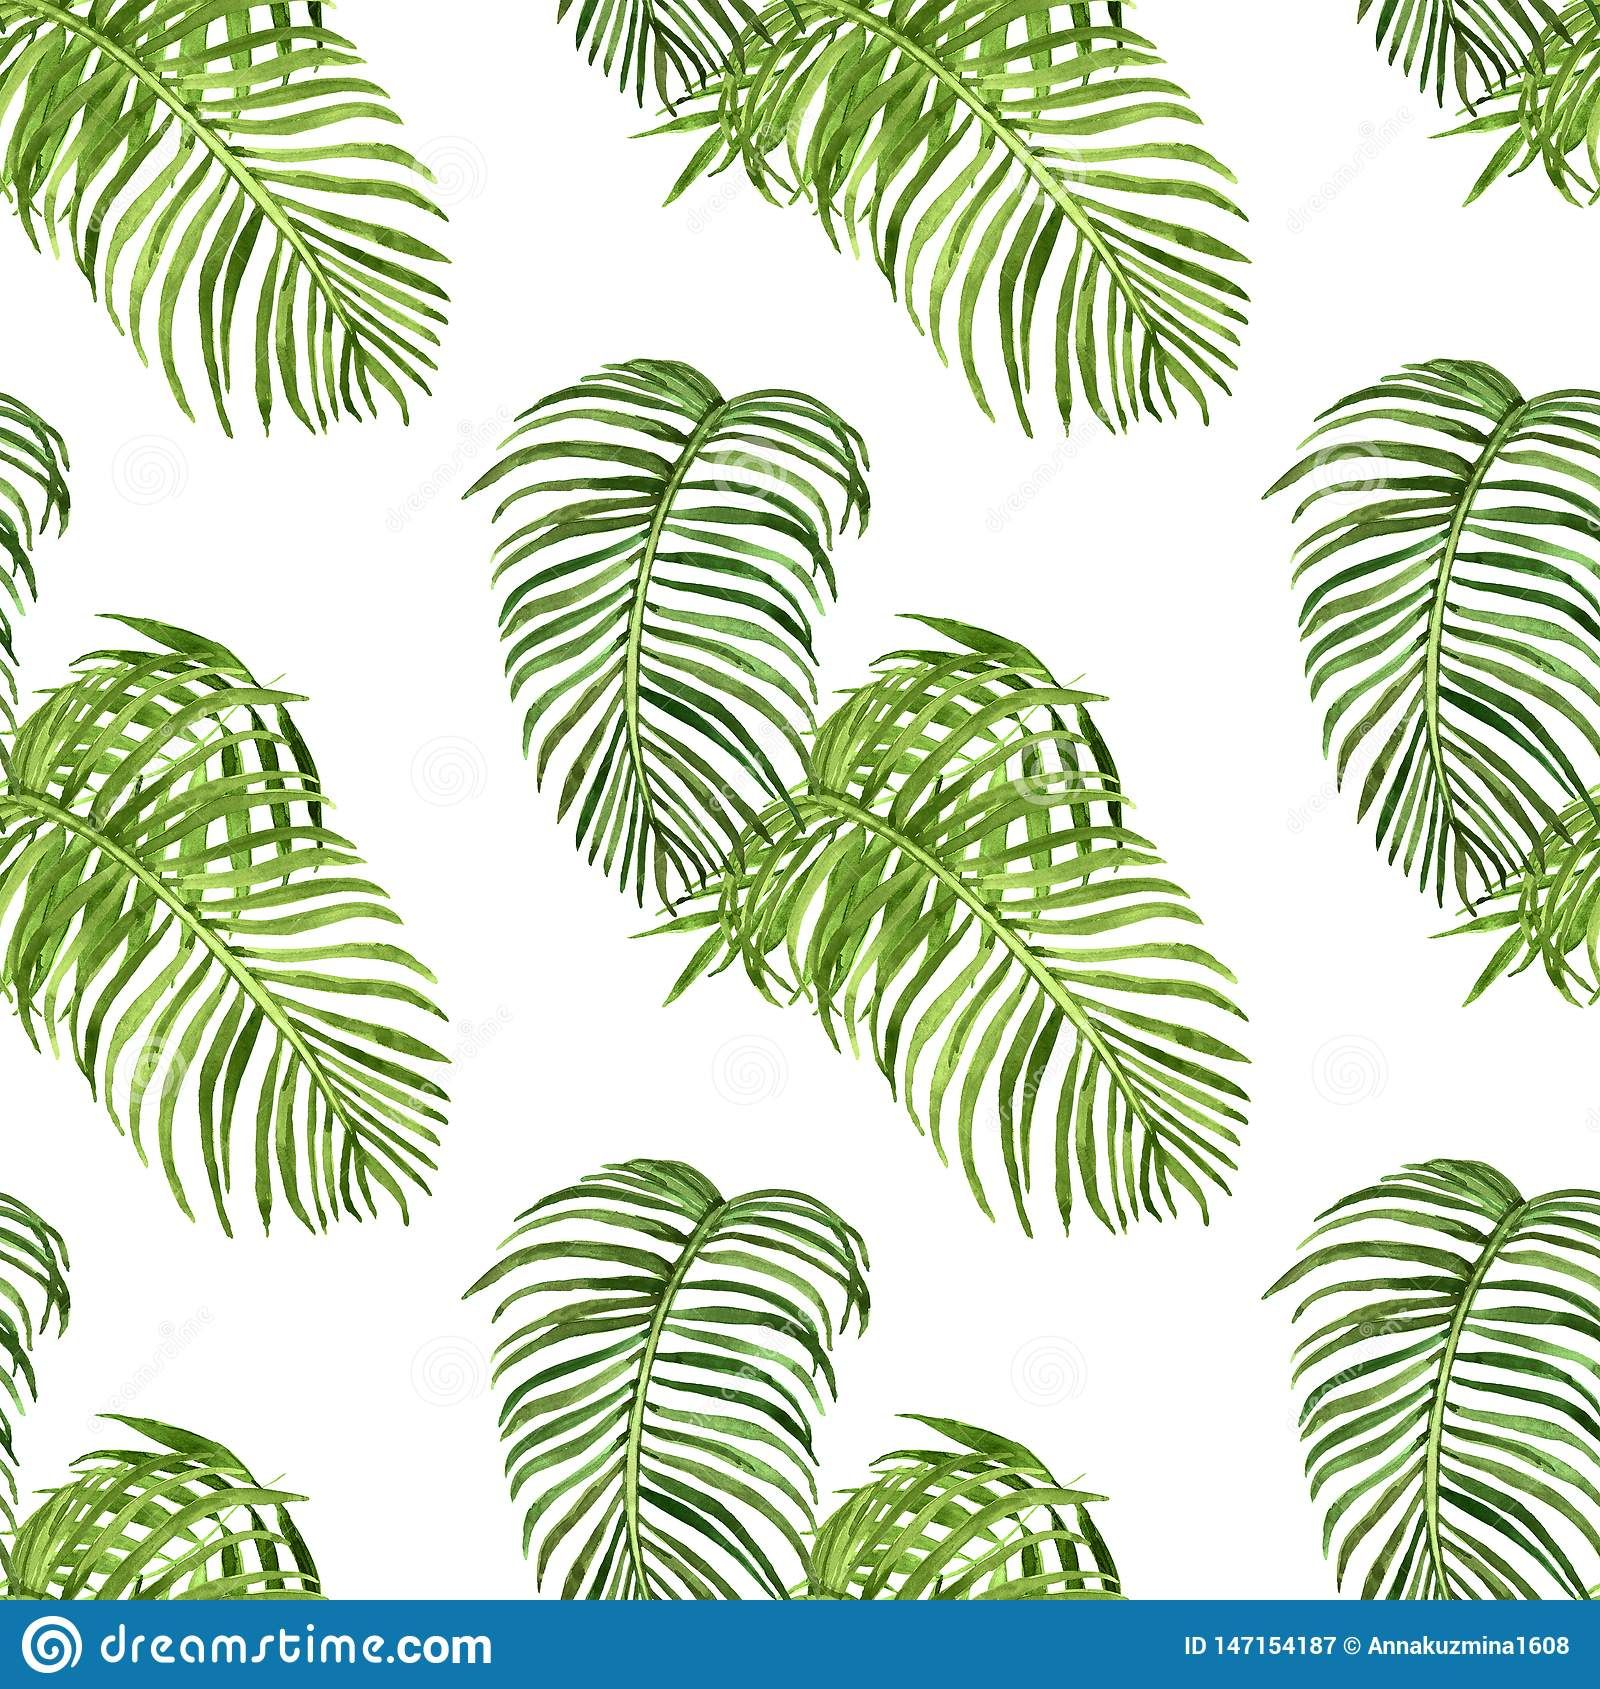 Tropical leaves digital paper Exotic plants seamless pattern Tropical flowers pattern Instant download. Watercolor palm tree leaves